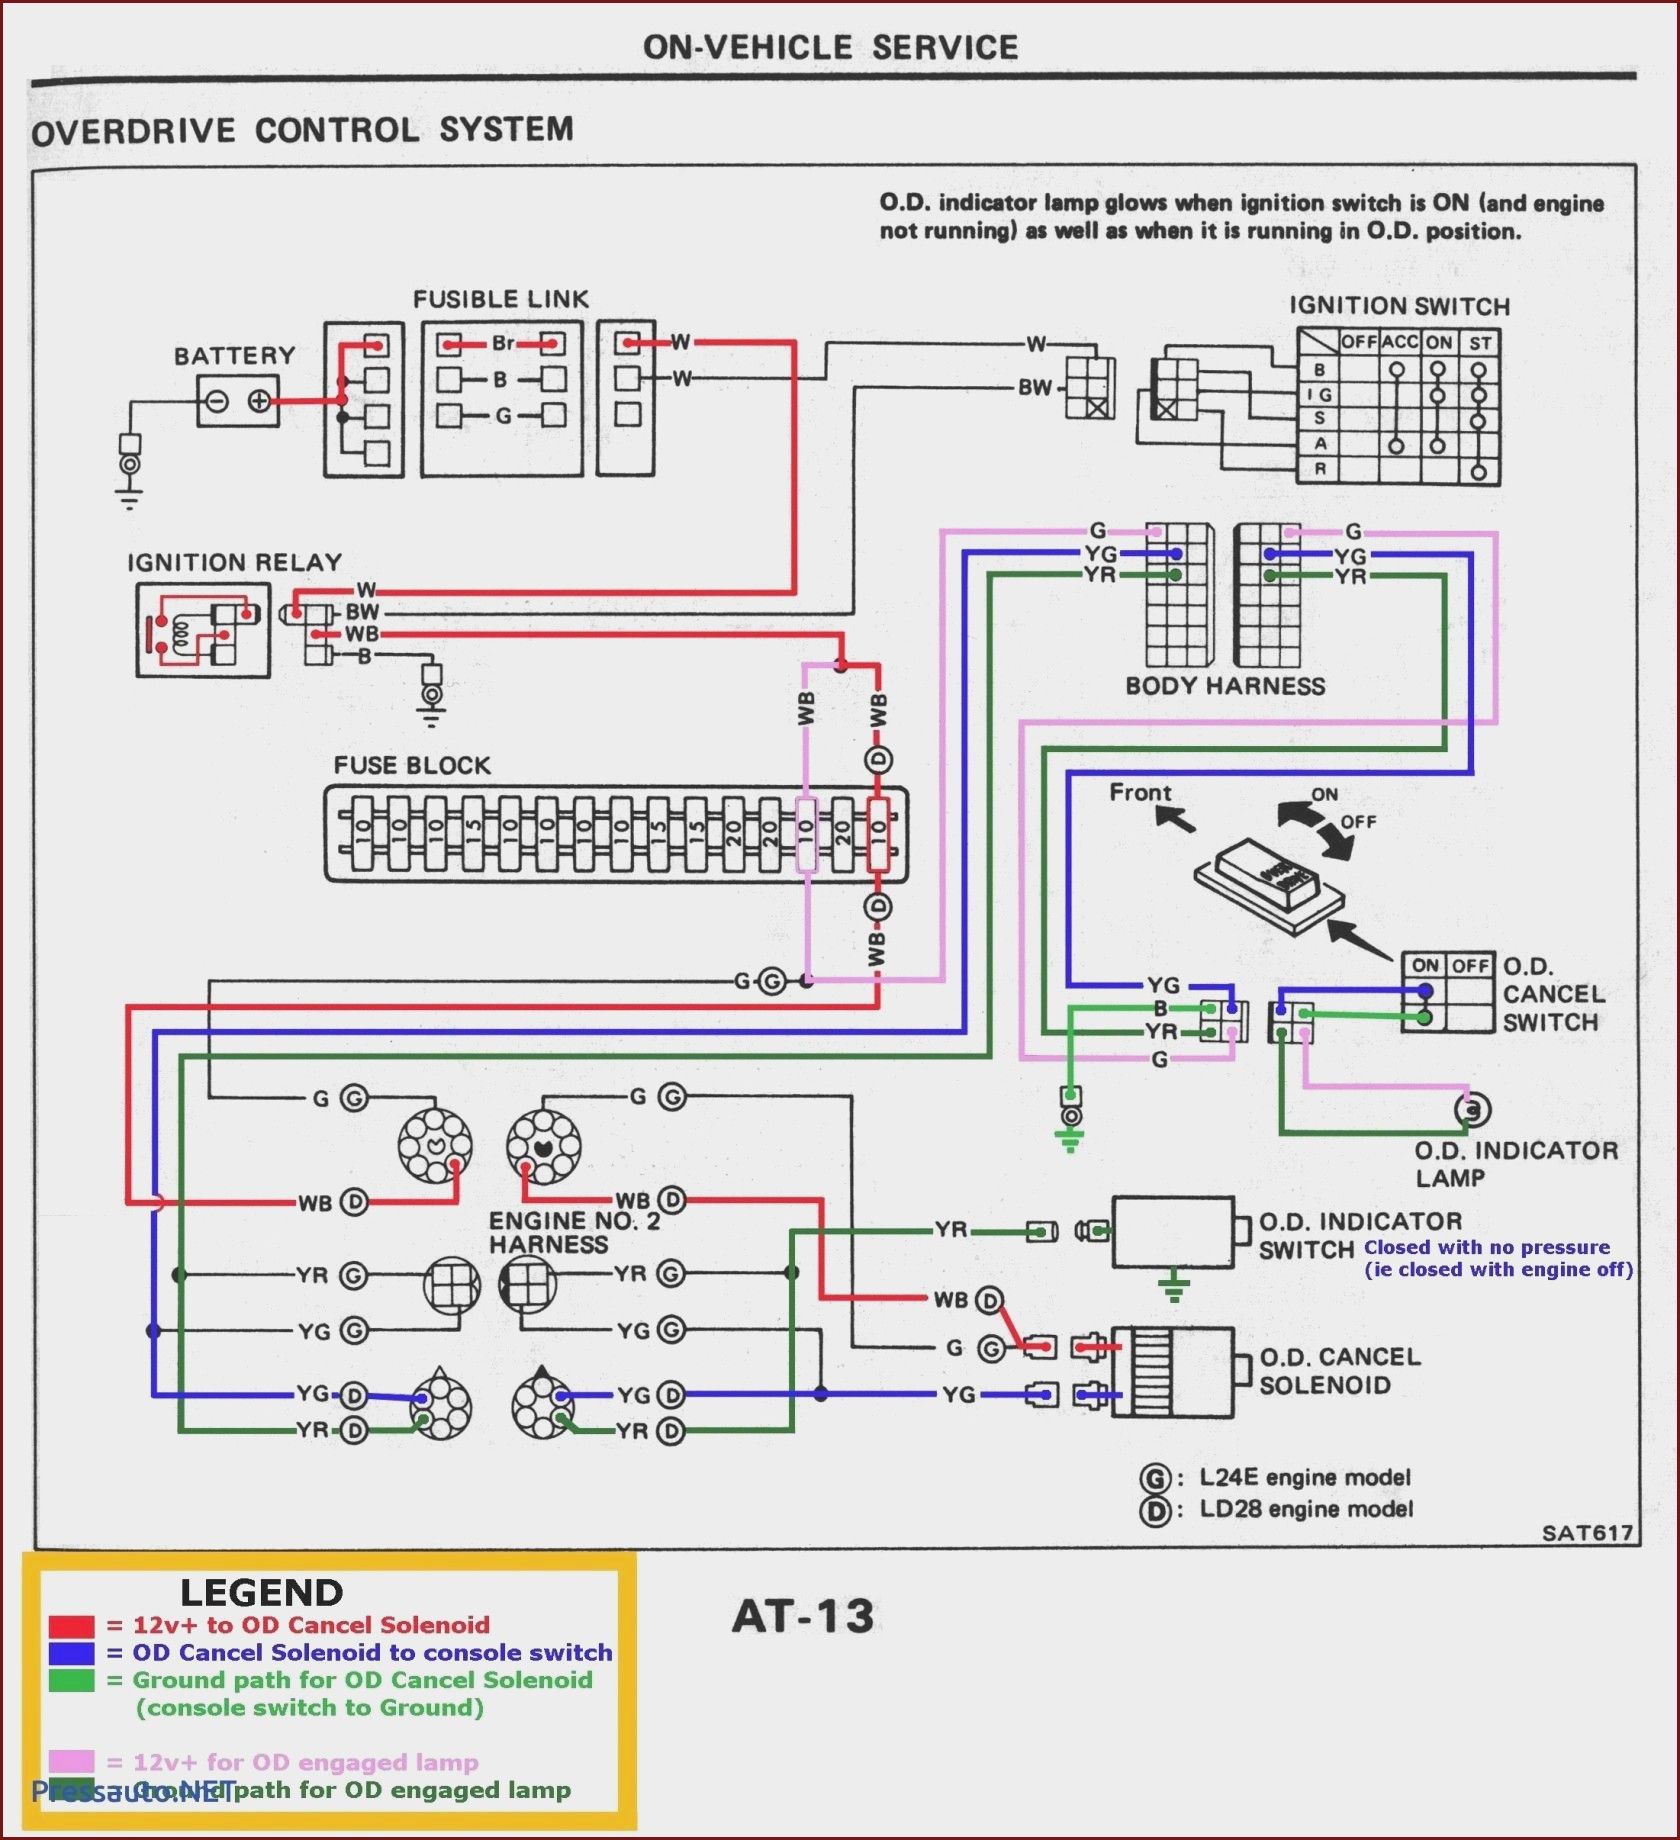 1997 Nissan Altima Engine Diagram 1995 Nissan Pathfinder Starter Wiring Diagram at Manuals Library Of 1997 Nissan Altima Engine Diagram 1995 Nissan Pathfinder Starter Wiring Diagram at Manuals Library